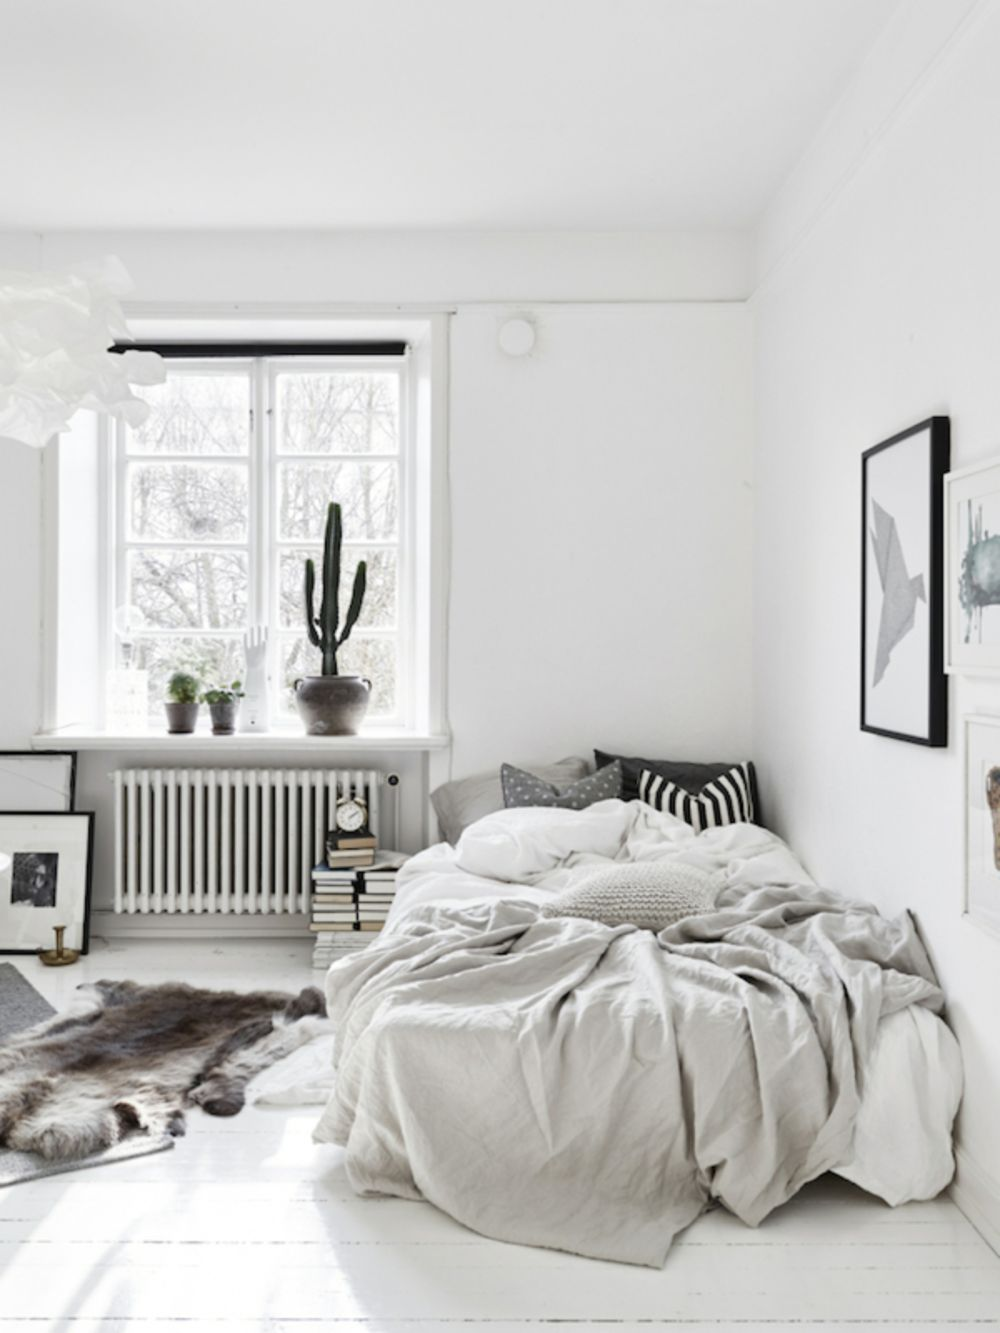 37 Minimalist Small Bedroom with Monochromatic Color